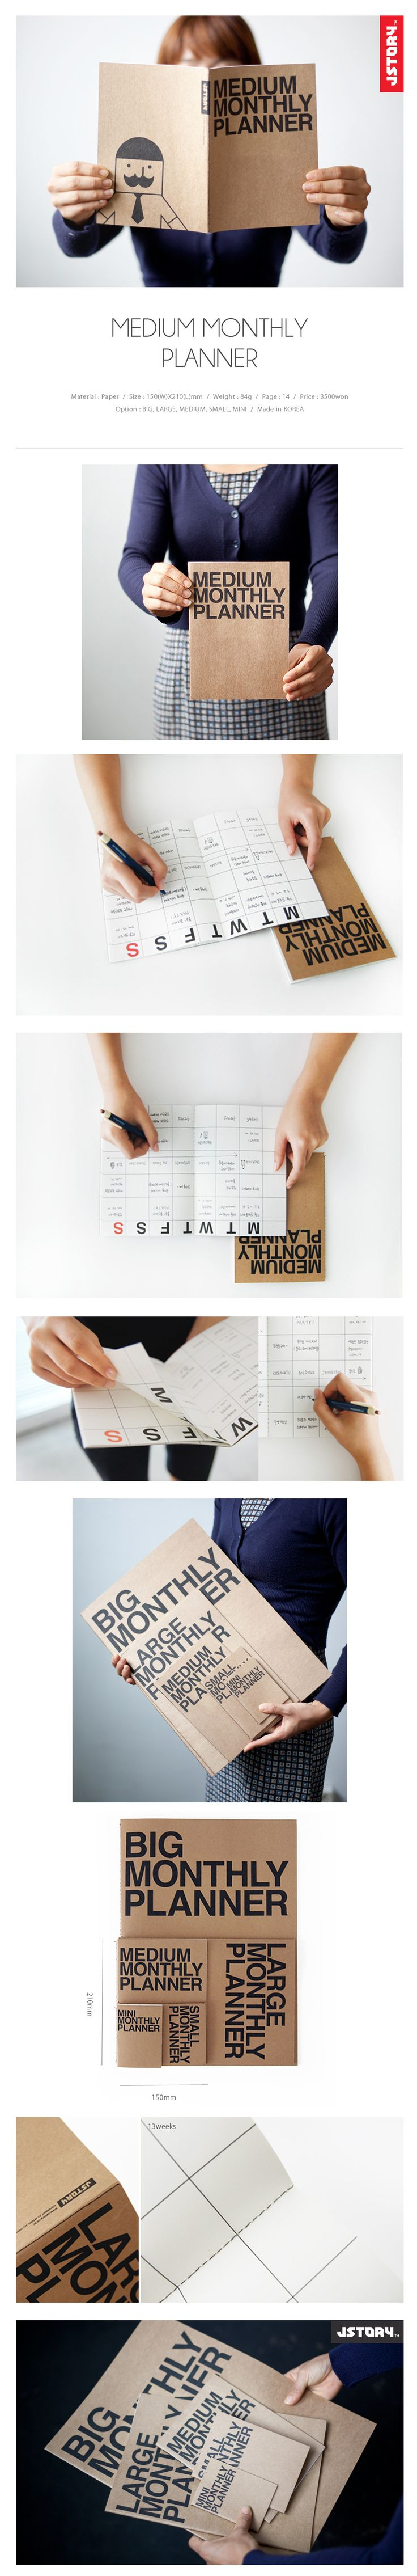 Планинг 'New Medium Monthly Planner'